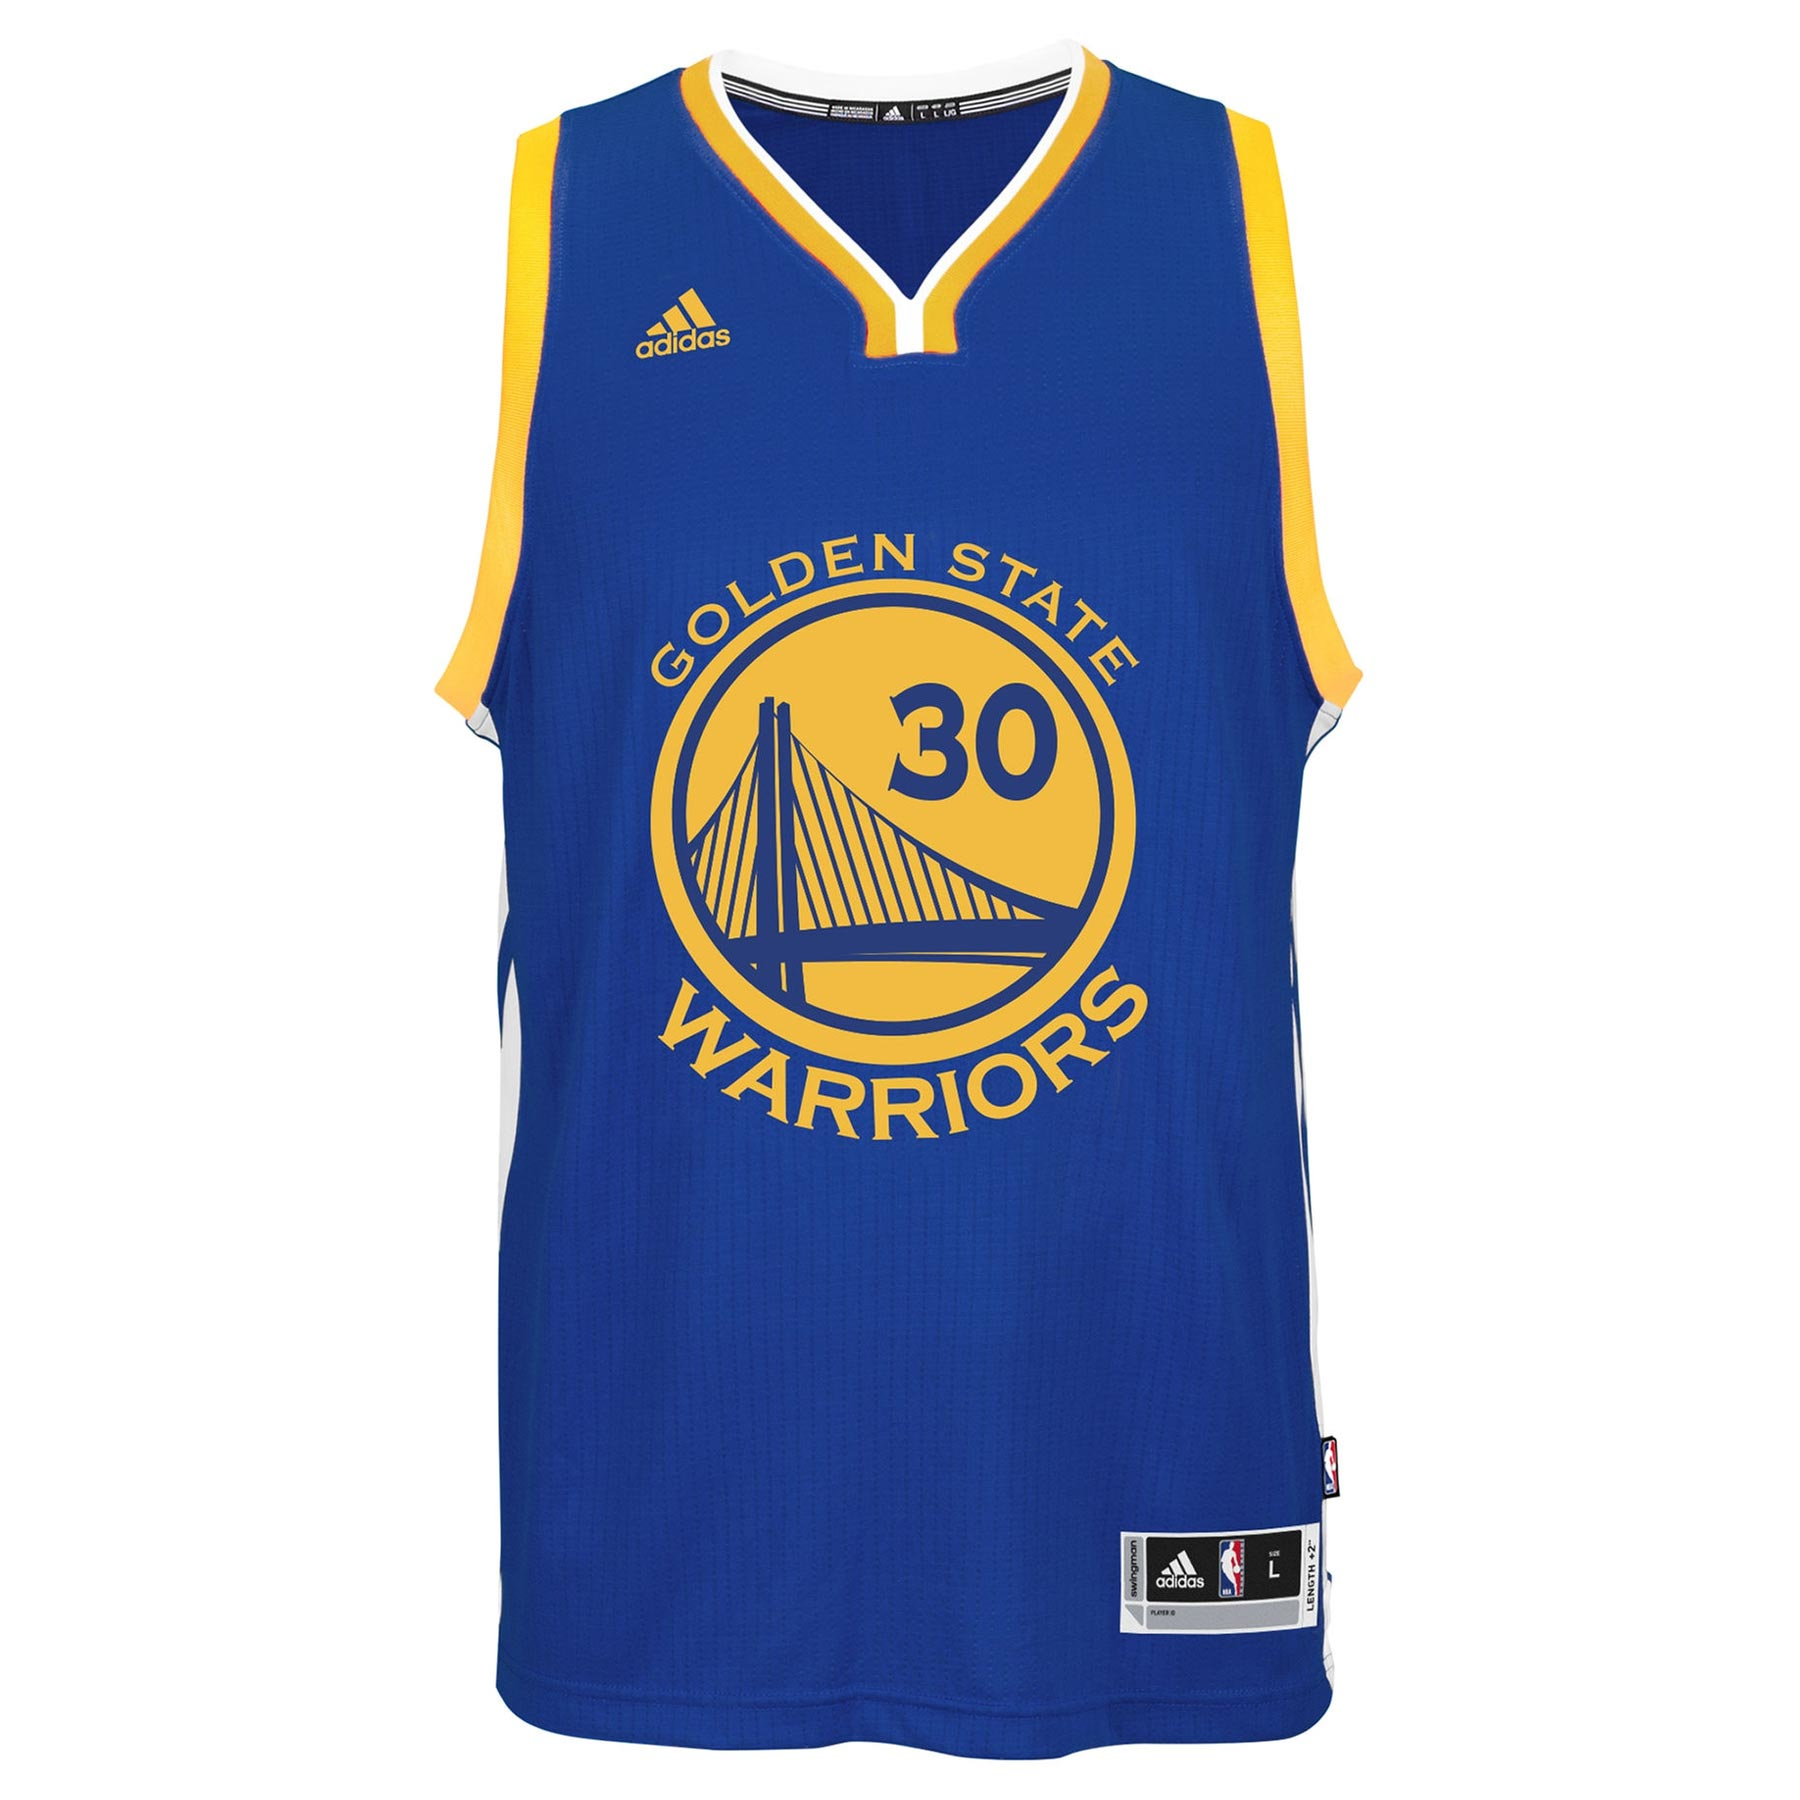 reputable site d87e2 35231 Stephen Curry Golden State Warriors NBA Swingman Road ...